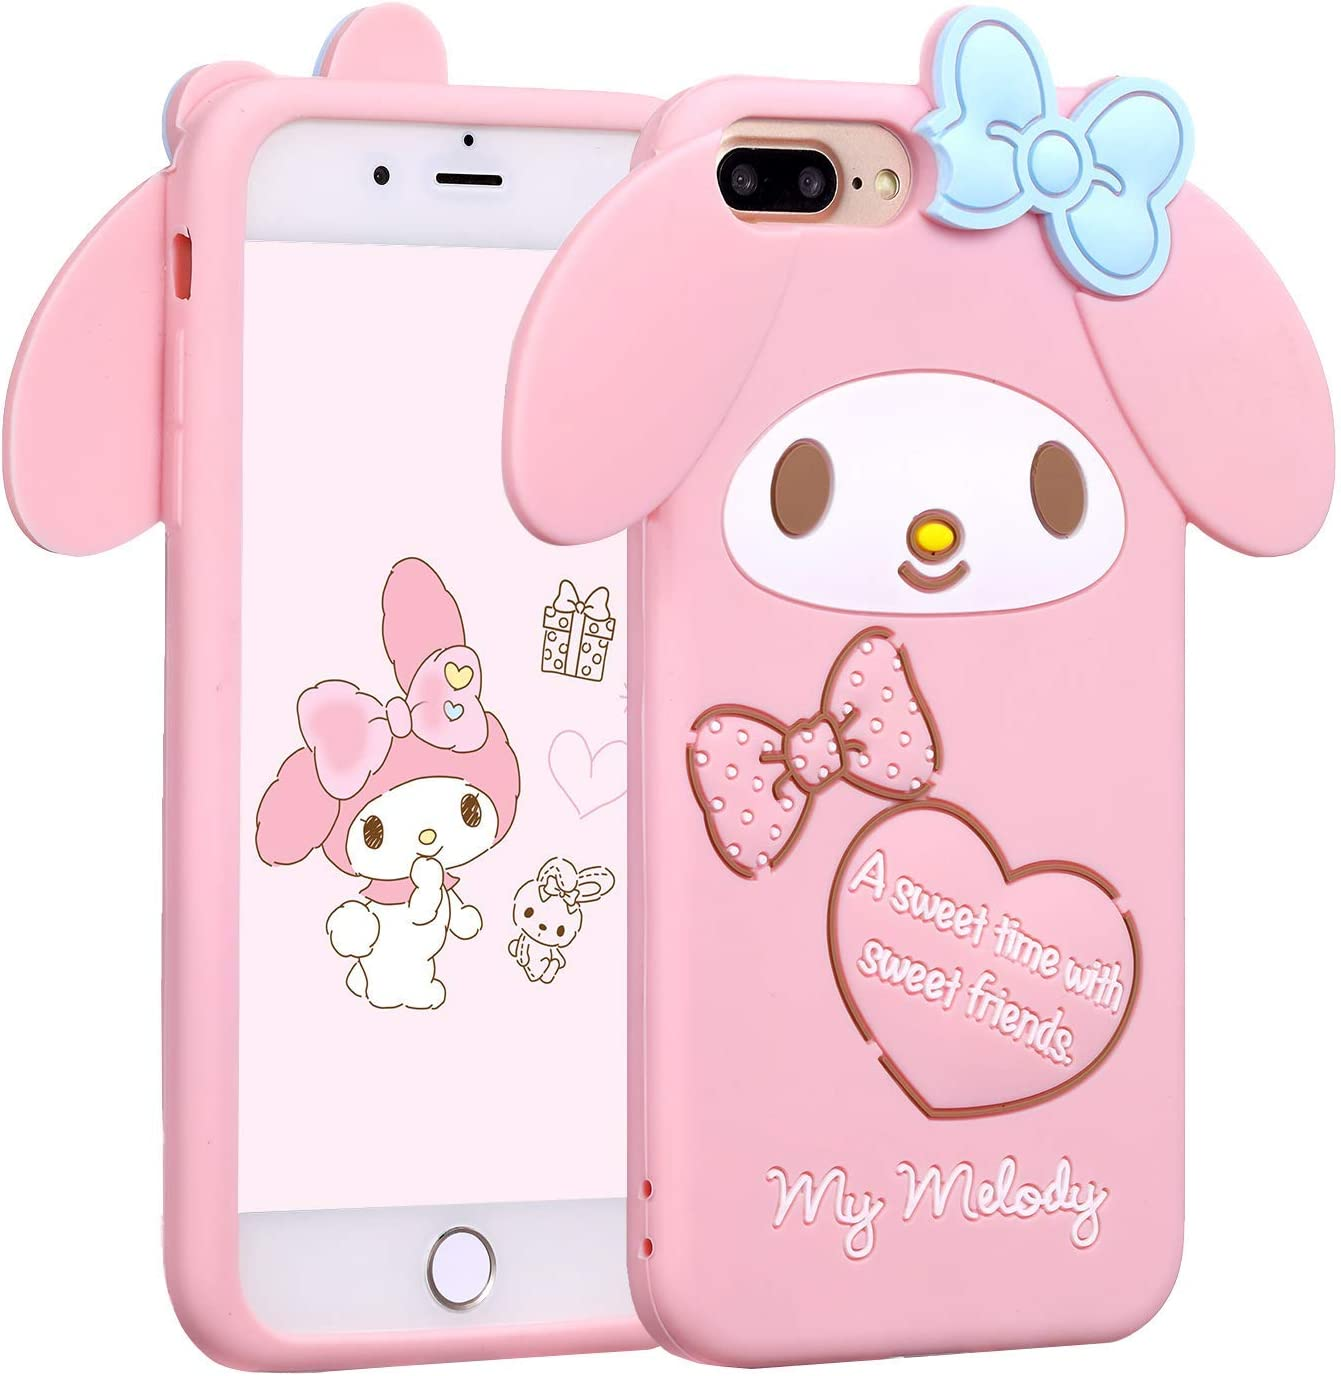 iPhone 10 X Punky Pins iPhone 678 Plus Dark Doodle Cats Soft Shell Phone Case  Kawaii Cat Illustration Apple iPhone 678